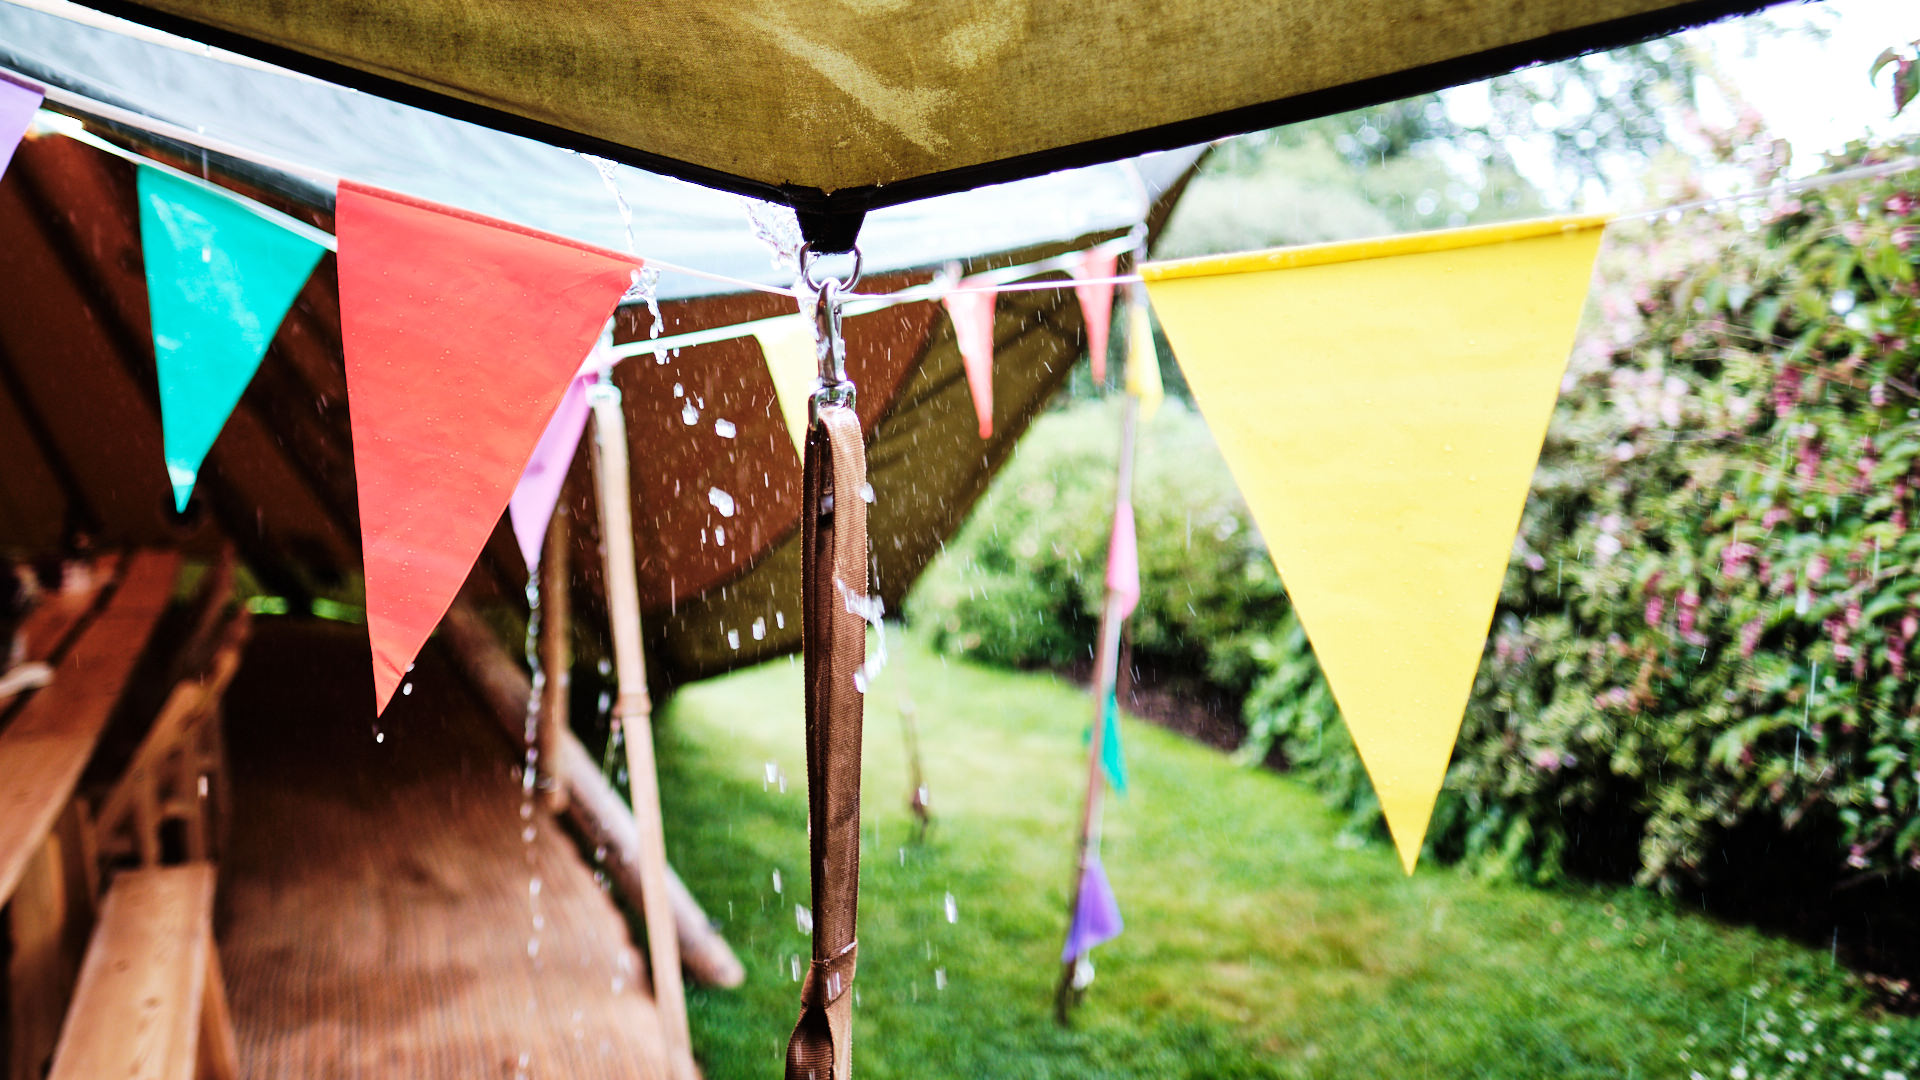 a colour photograph of rain running down the roof of a tipi being used for a wedding